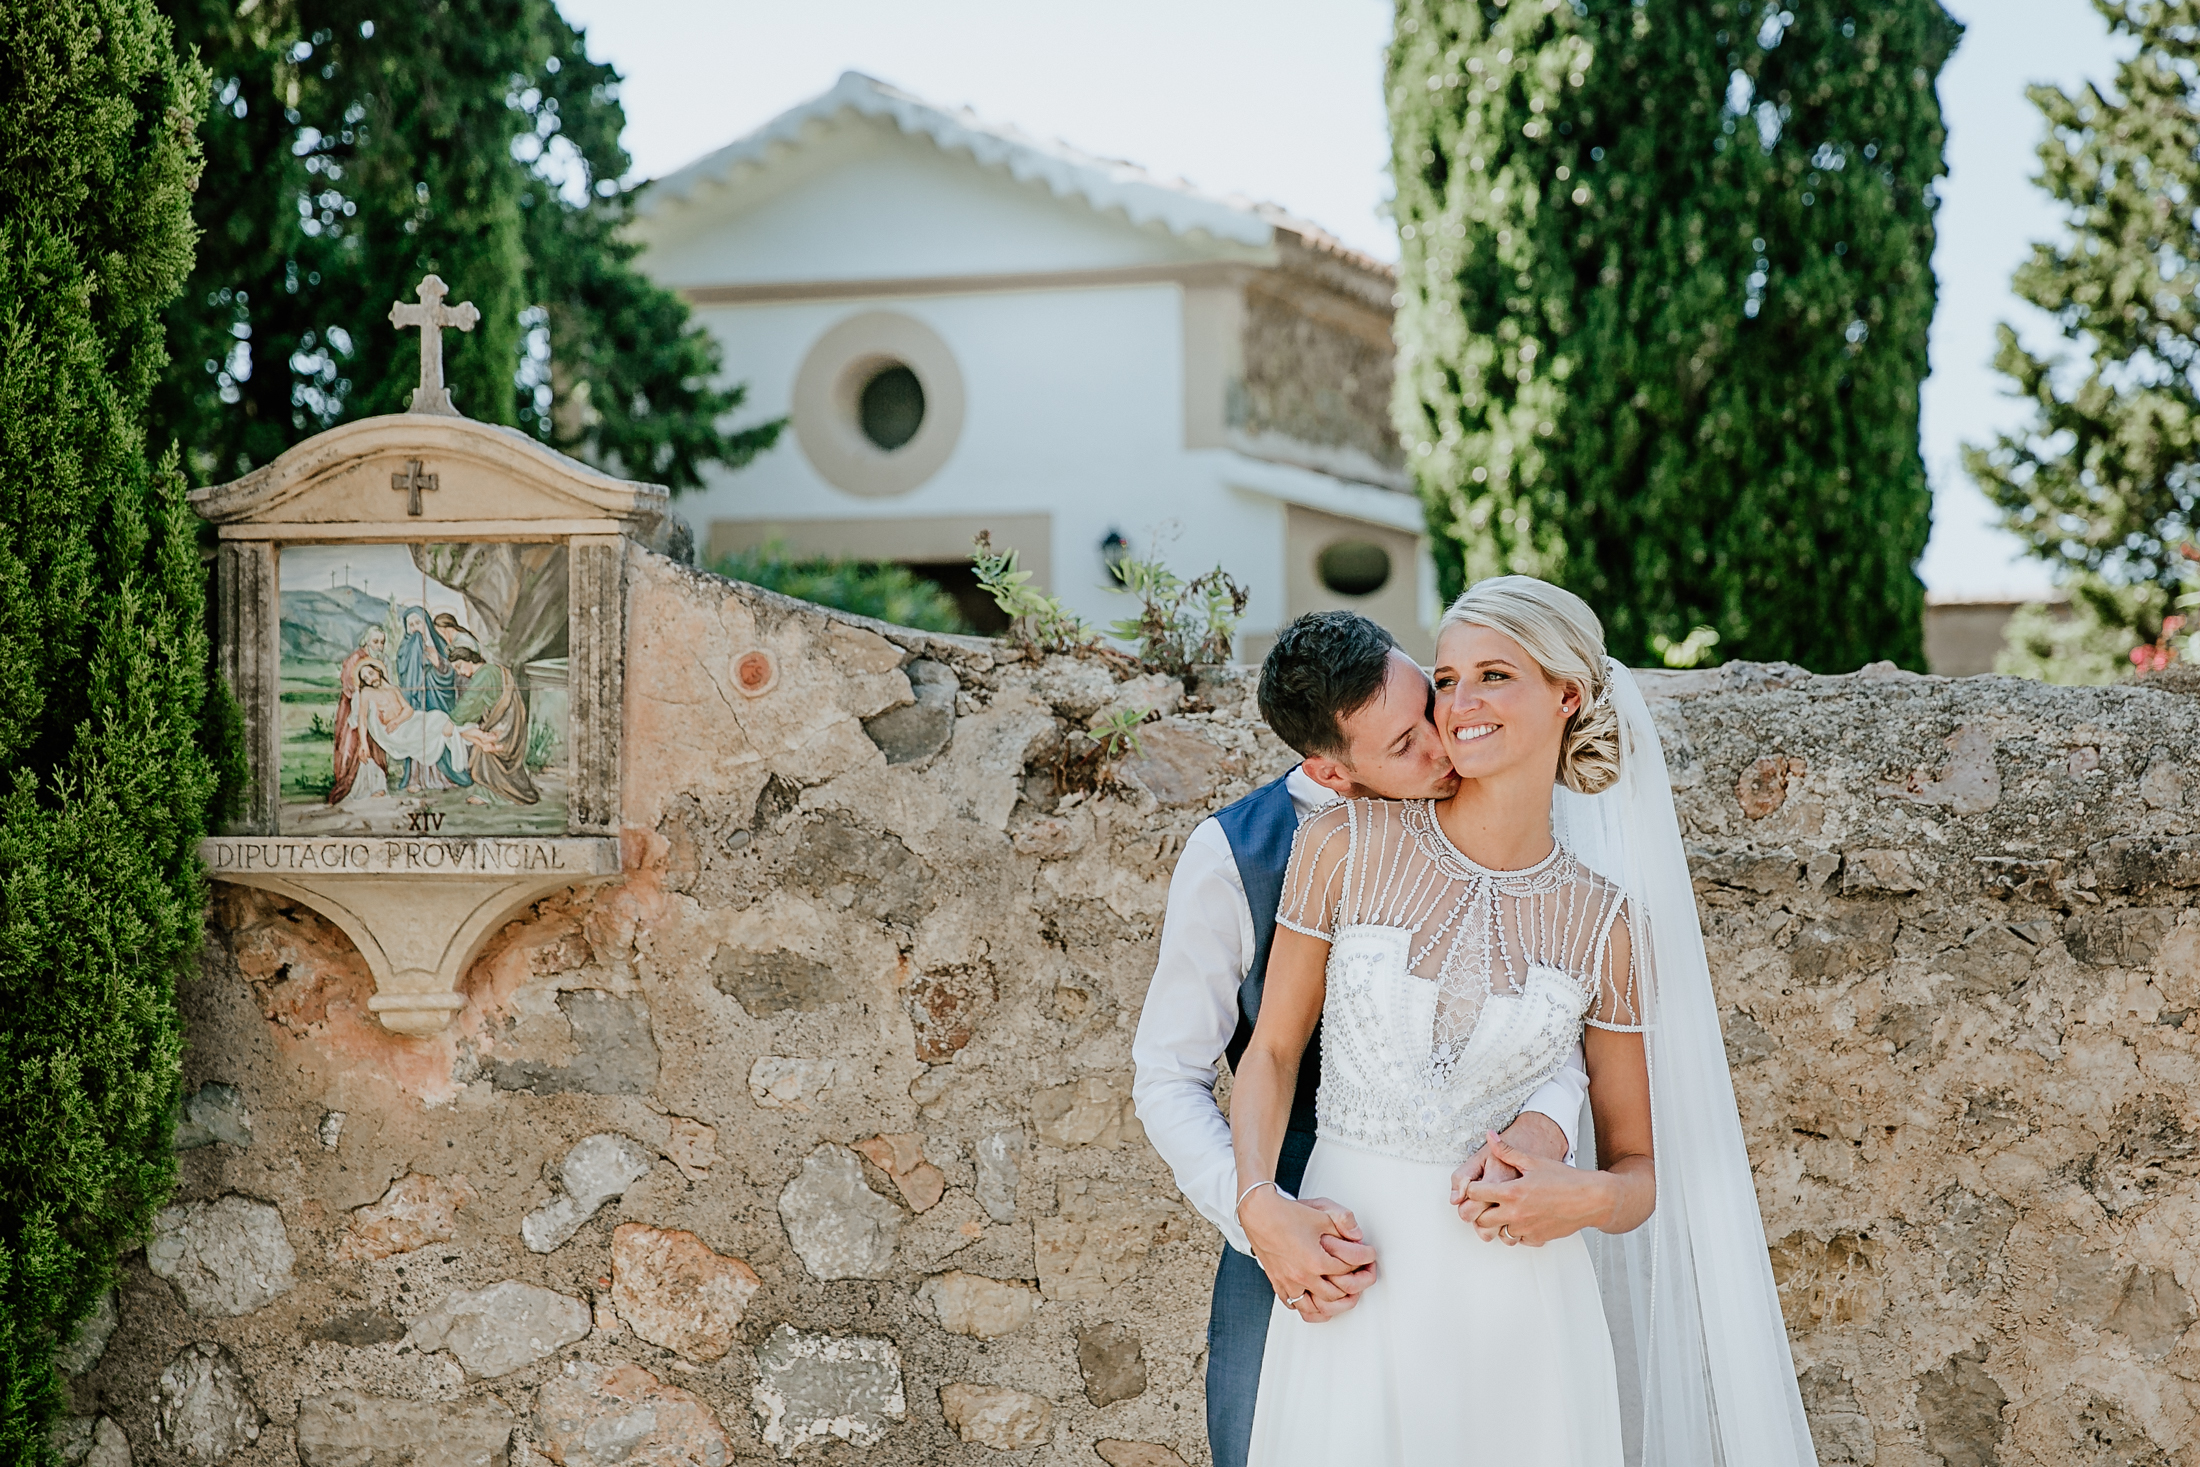 Weddings at La Residencia